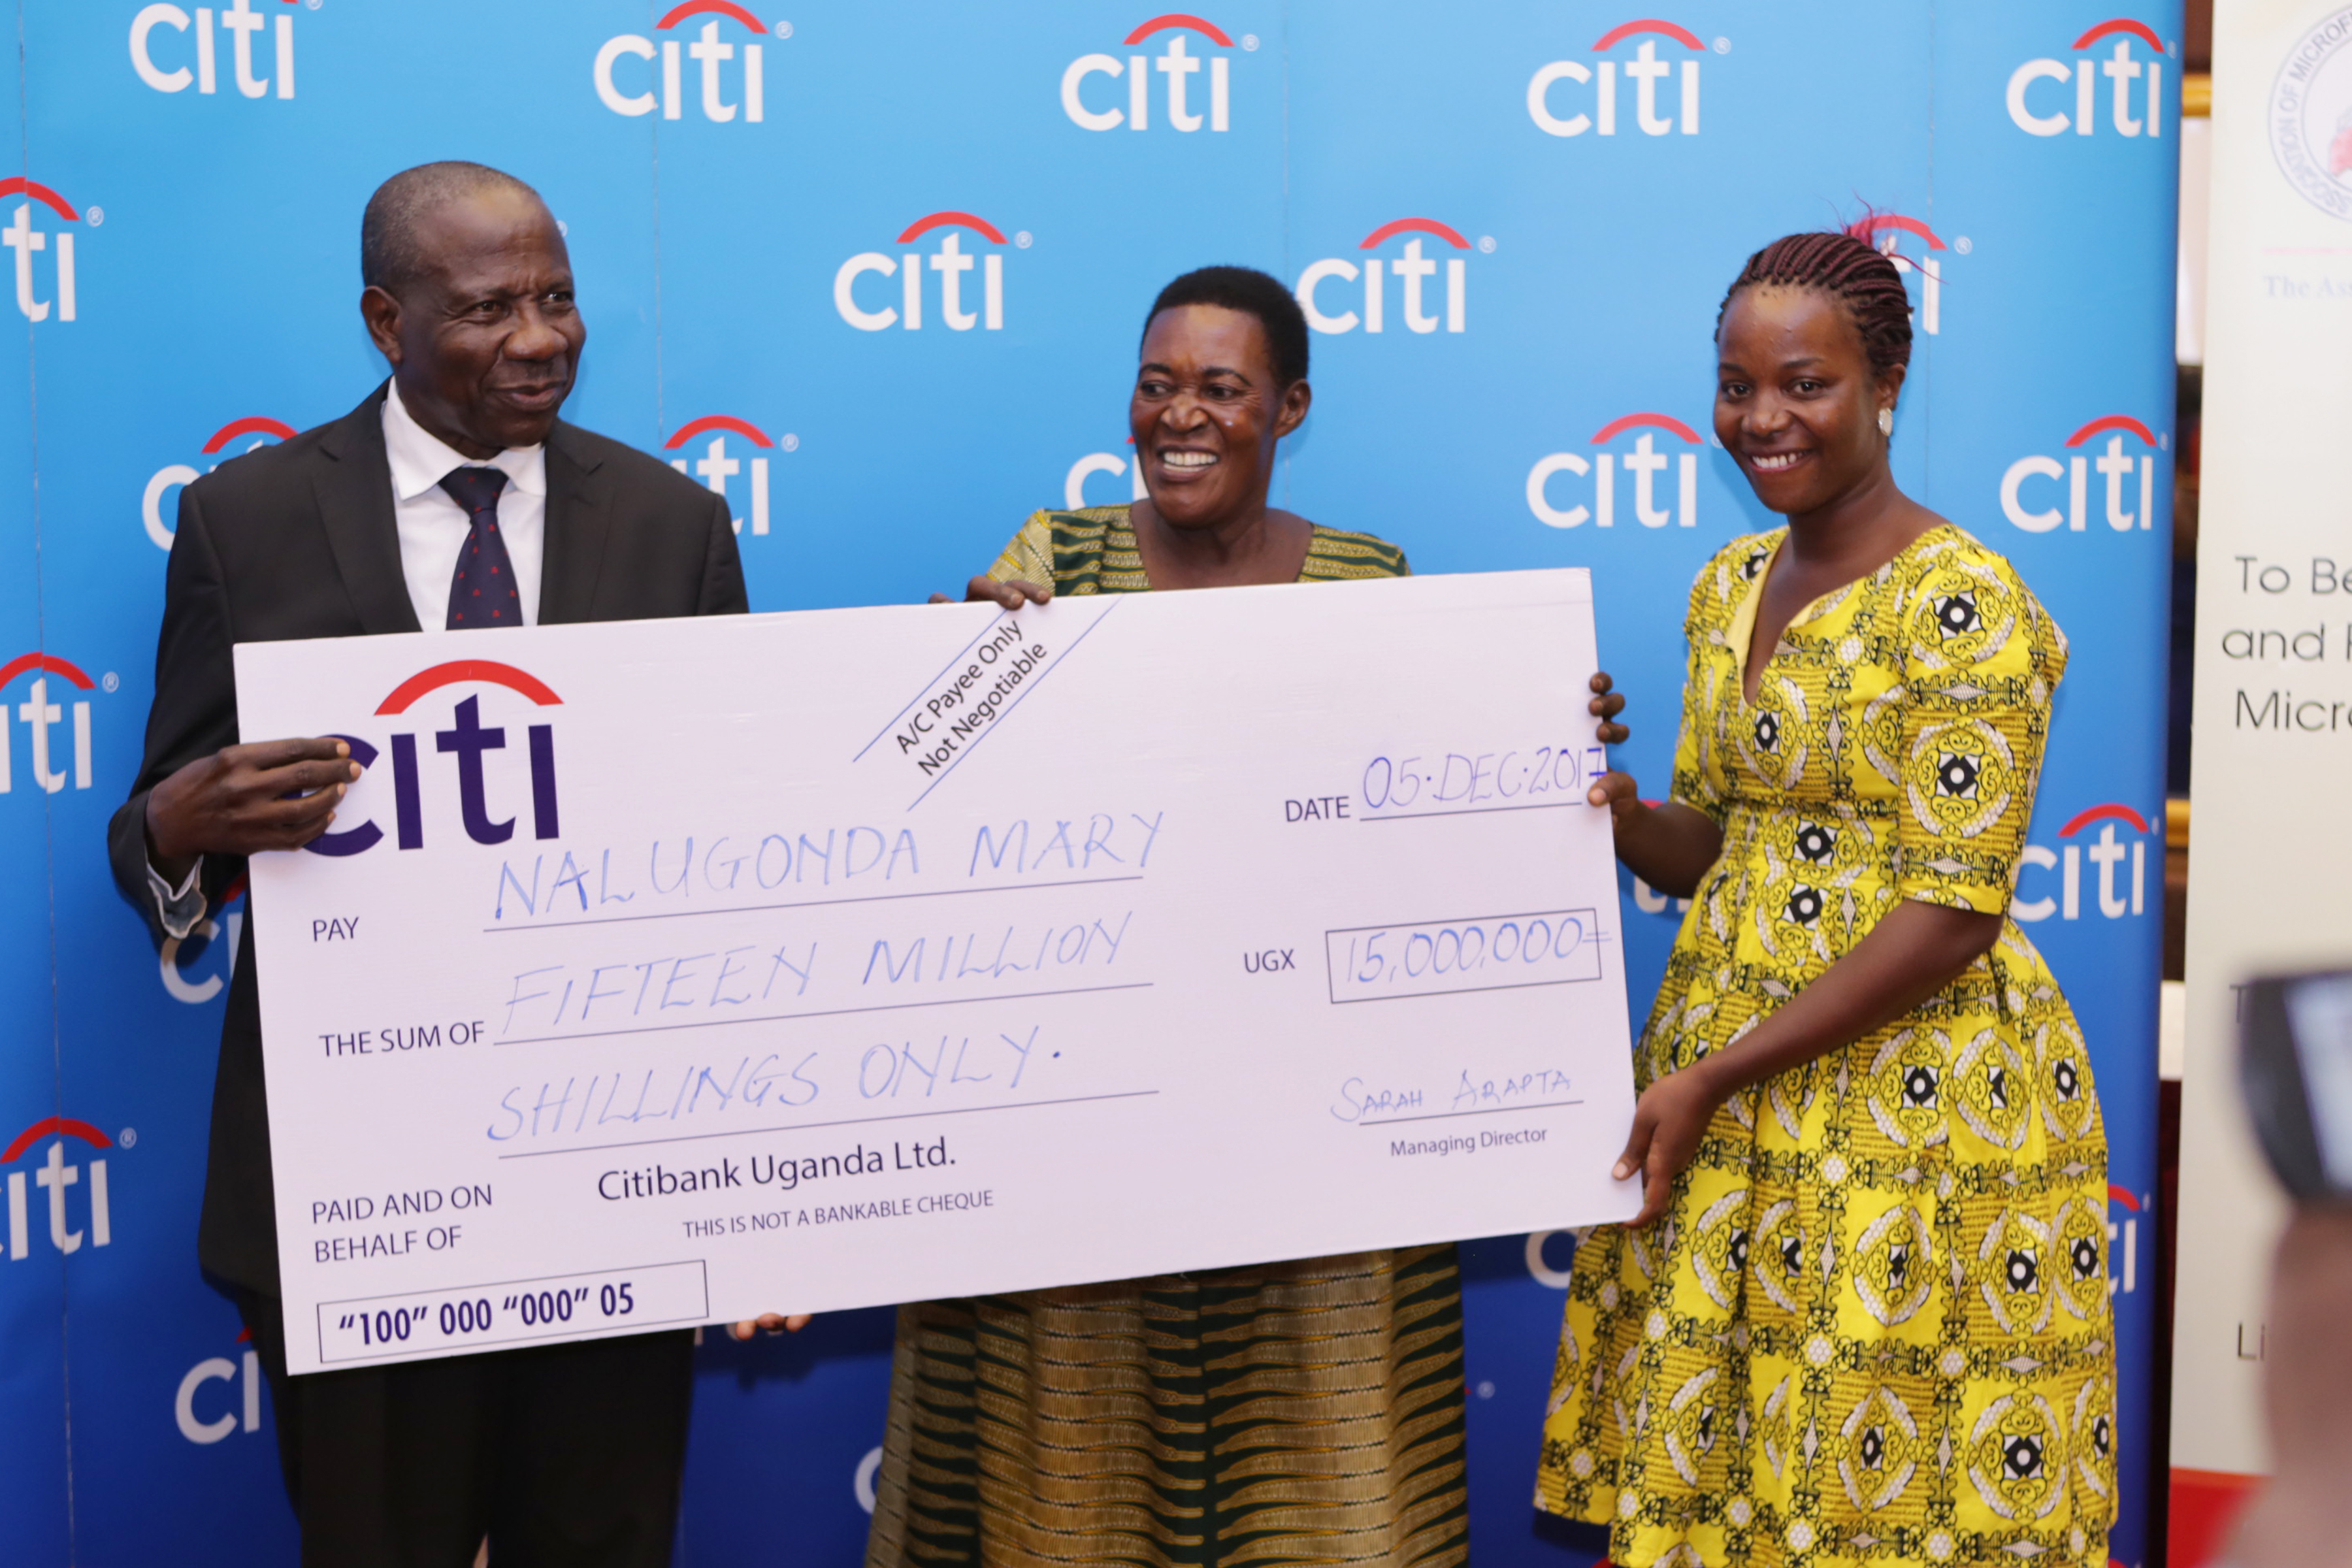 Citi awards 2017